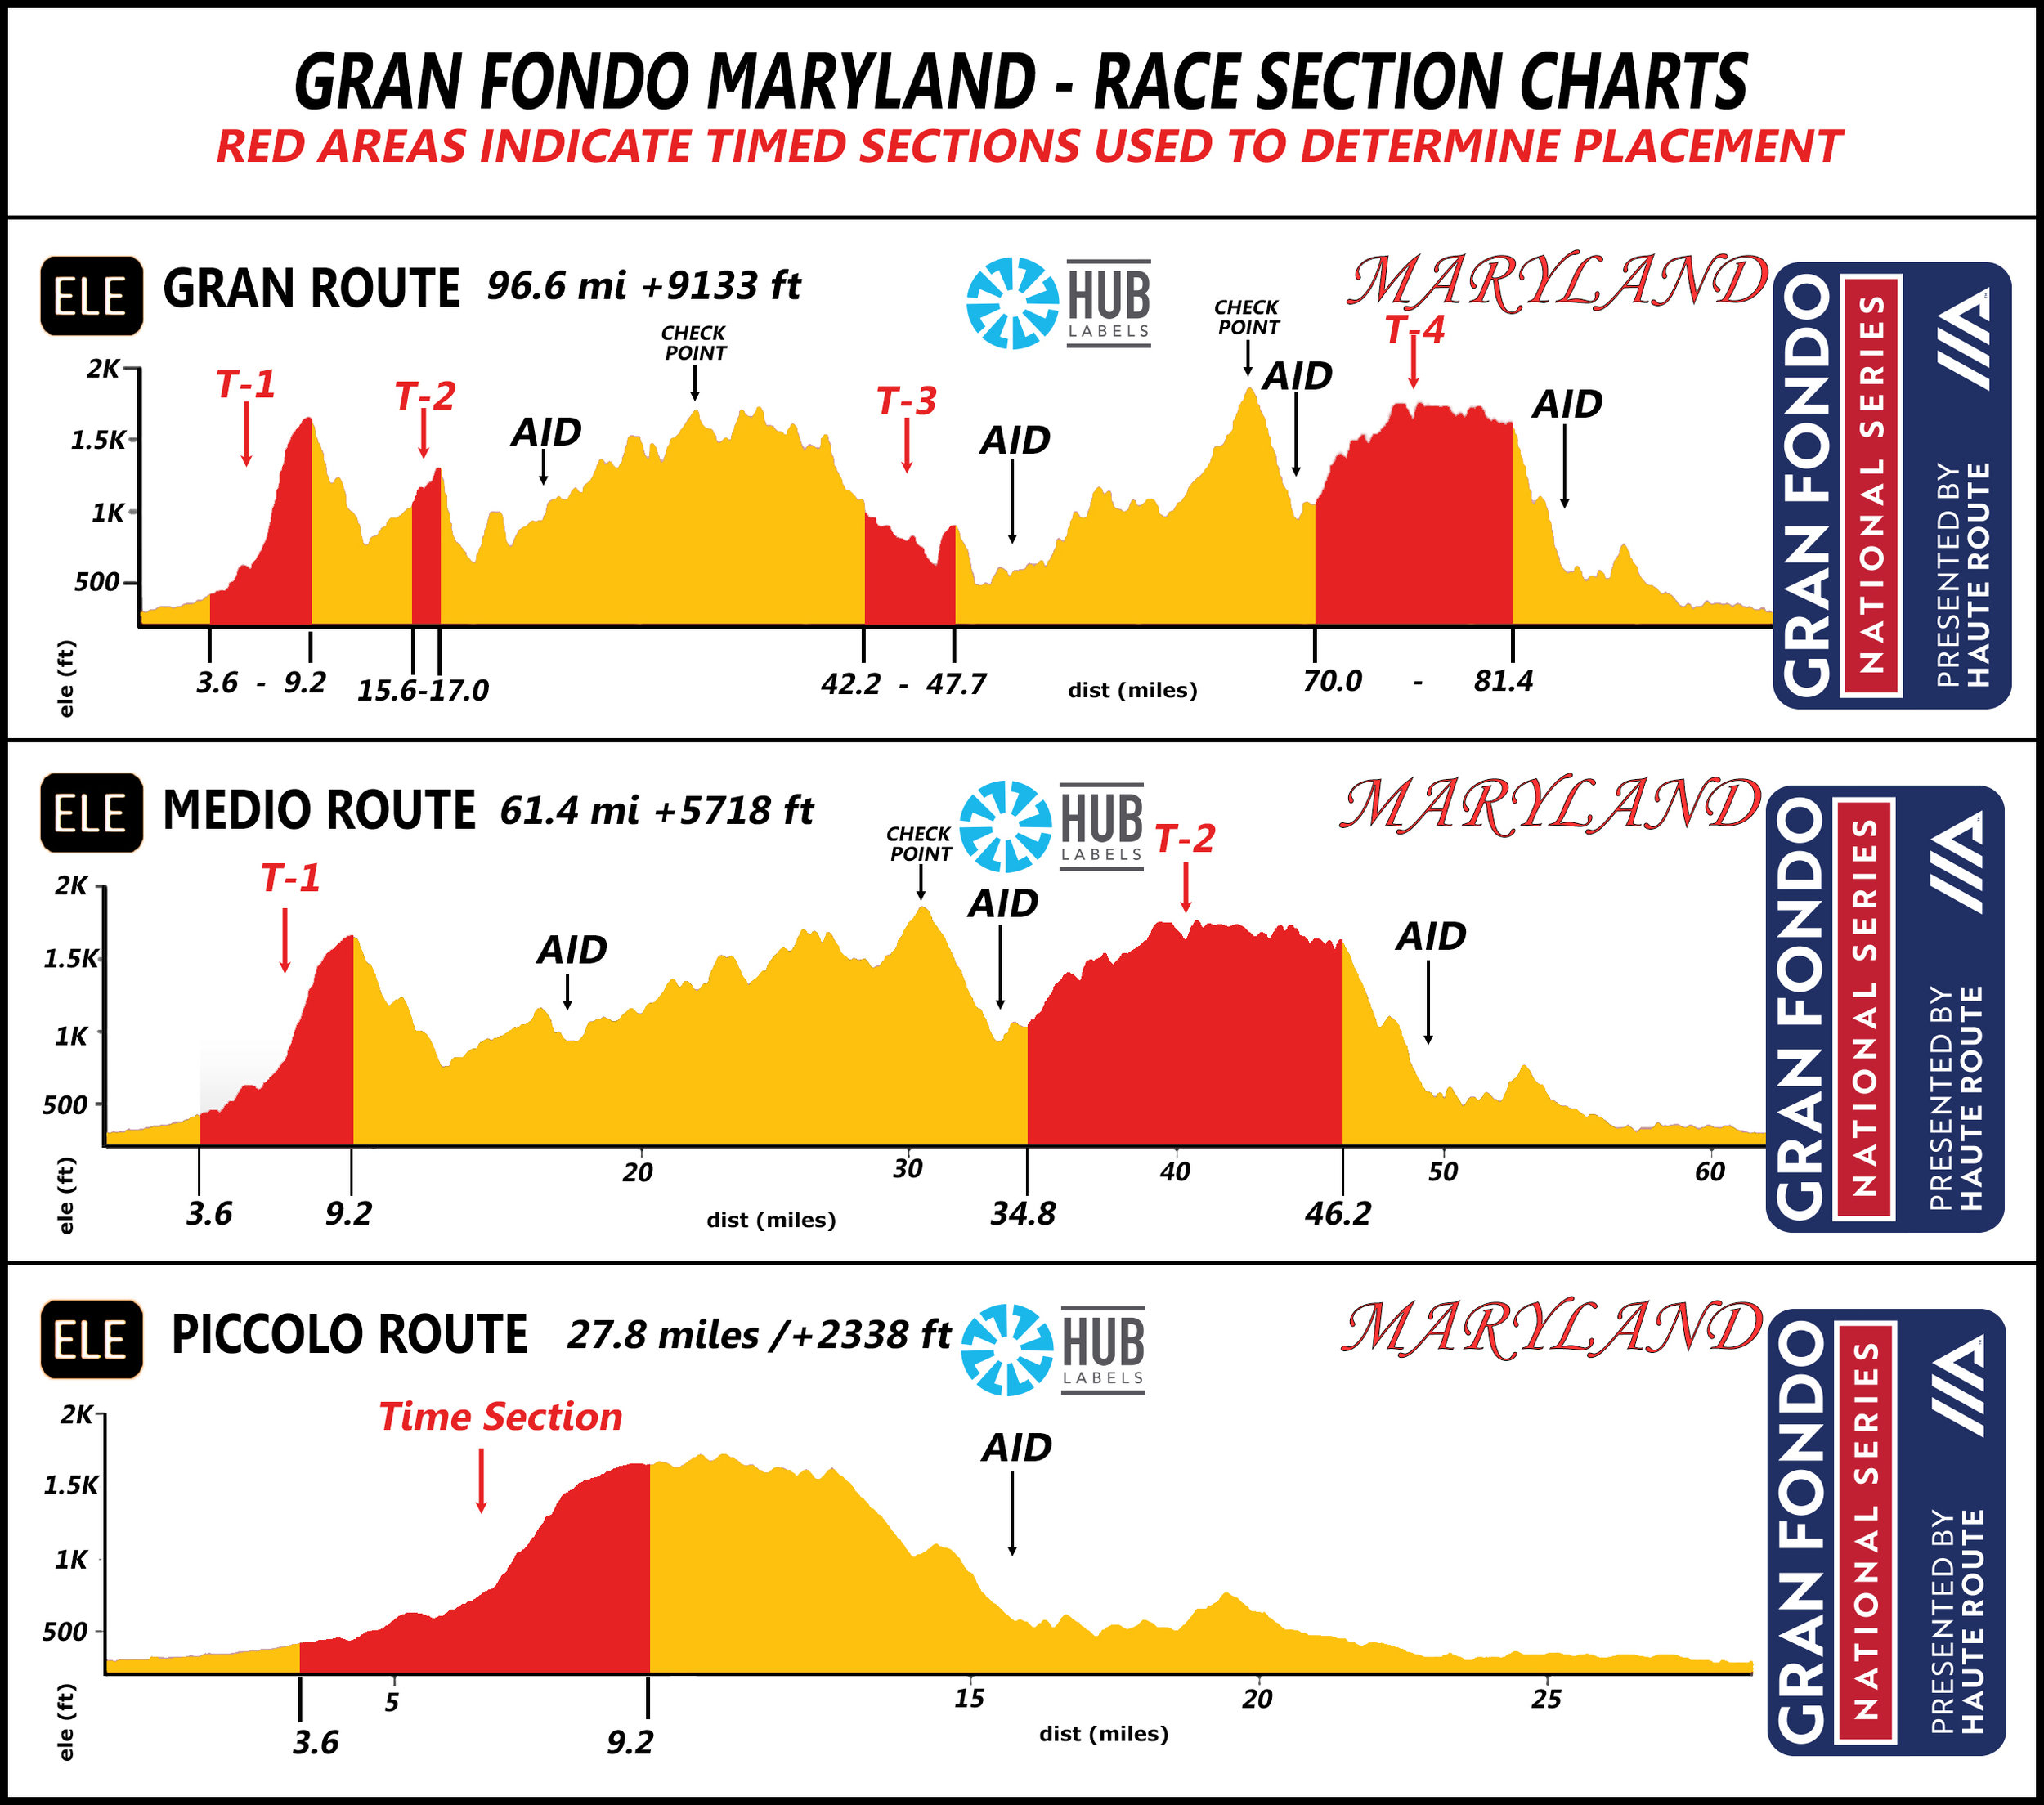 Elevations GFNC ALL 2018.jpg